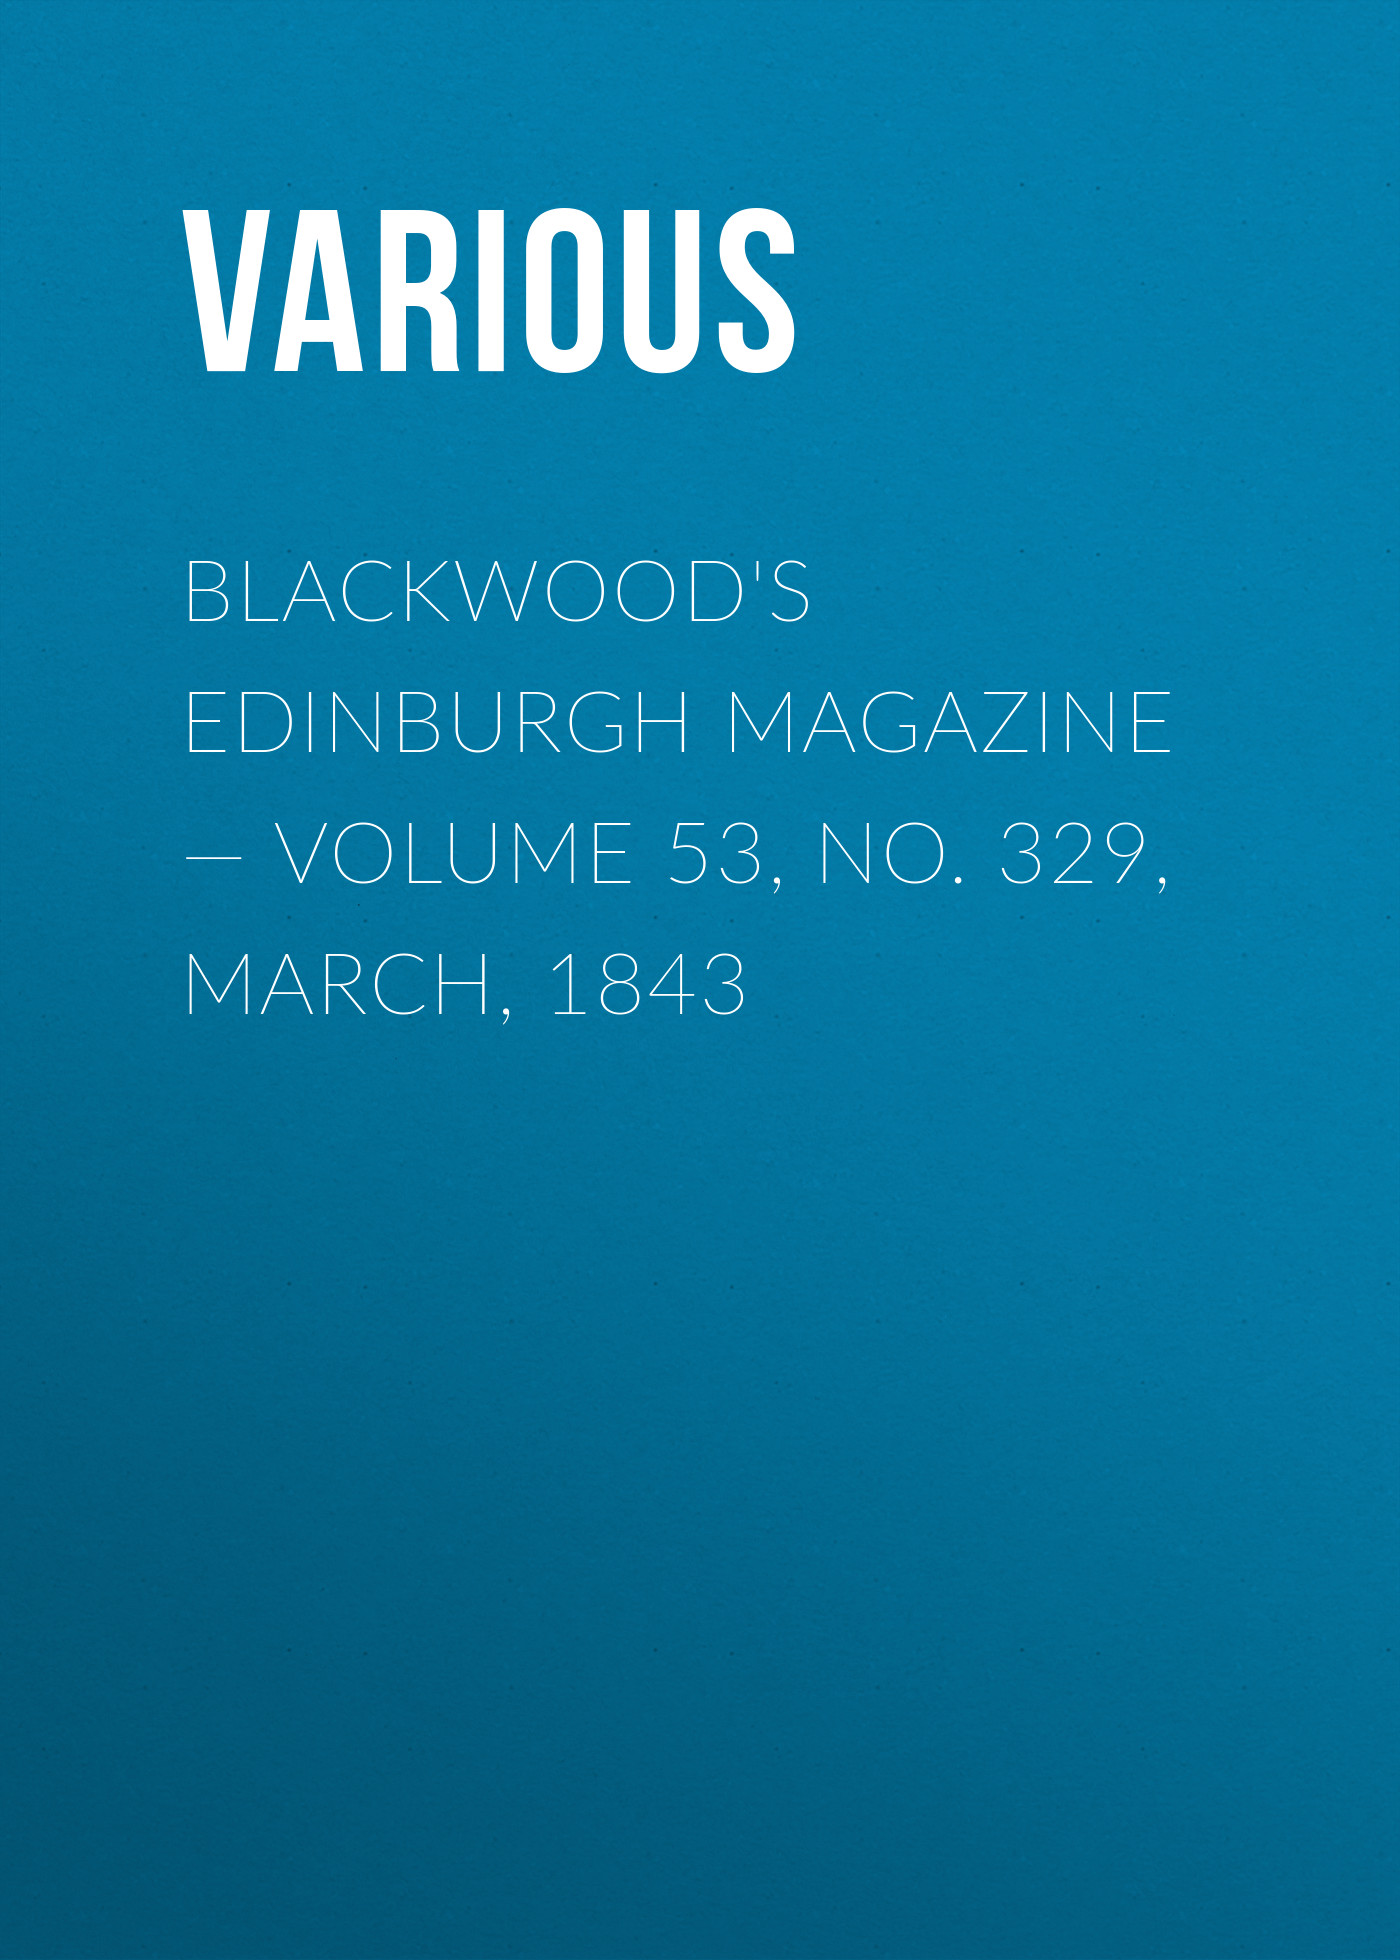 Various Blackwood's Edinburgh Magazine — Volume 53, No. 329, March, 1843